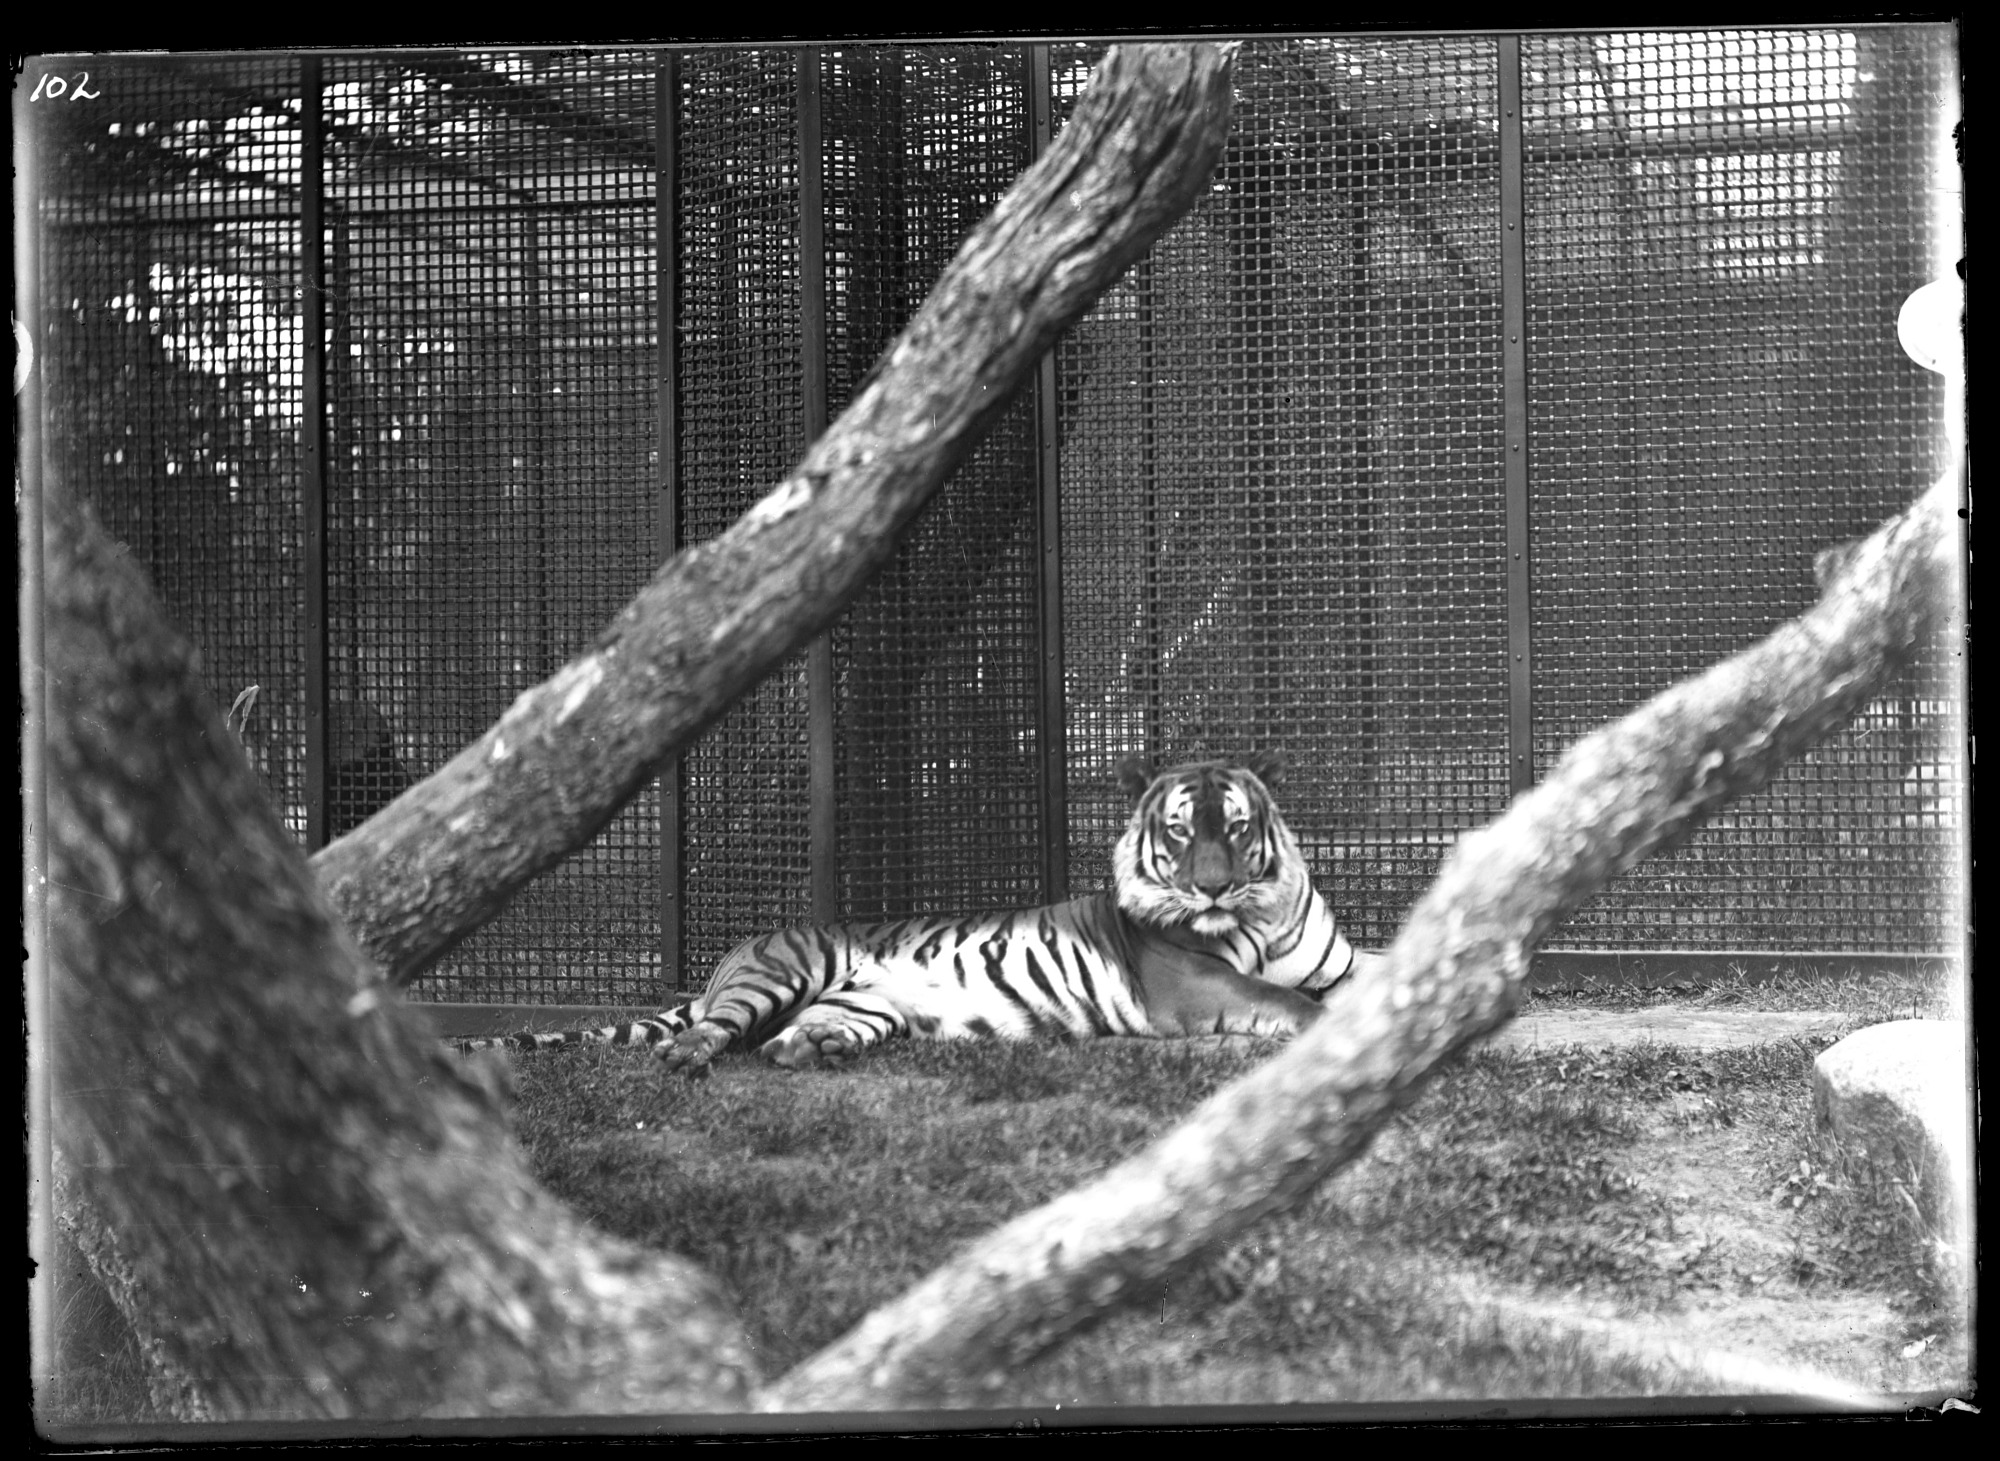 Bengal Tiger, Male, 1896, Smithsonian Institution Archives, SIA Acc. 14-167 [NZP-0102].